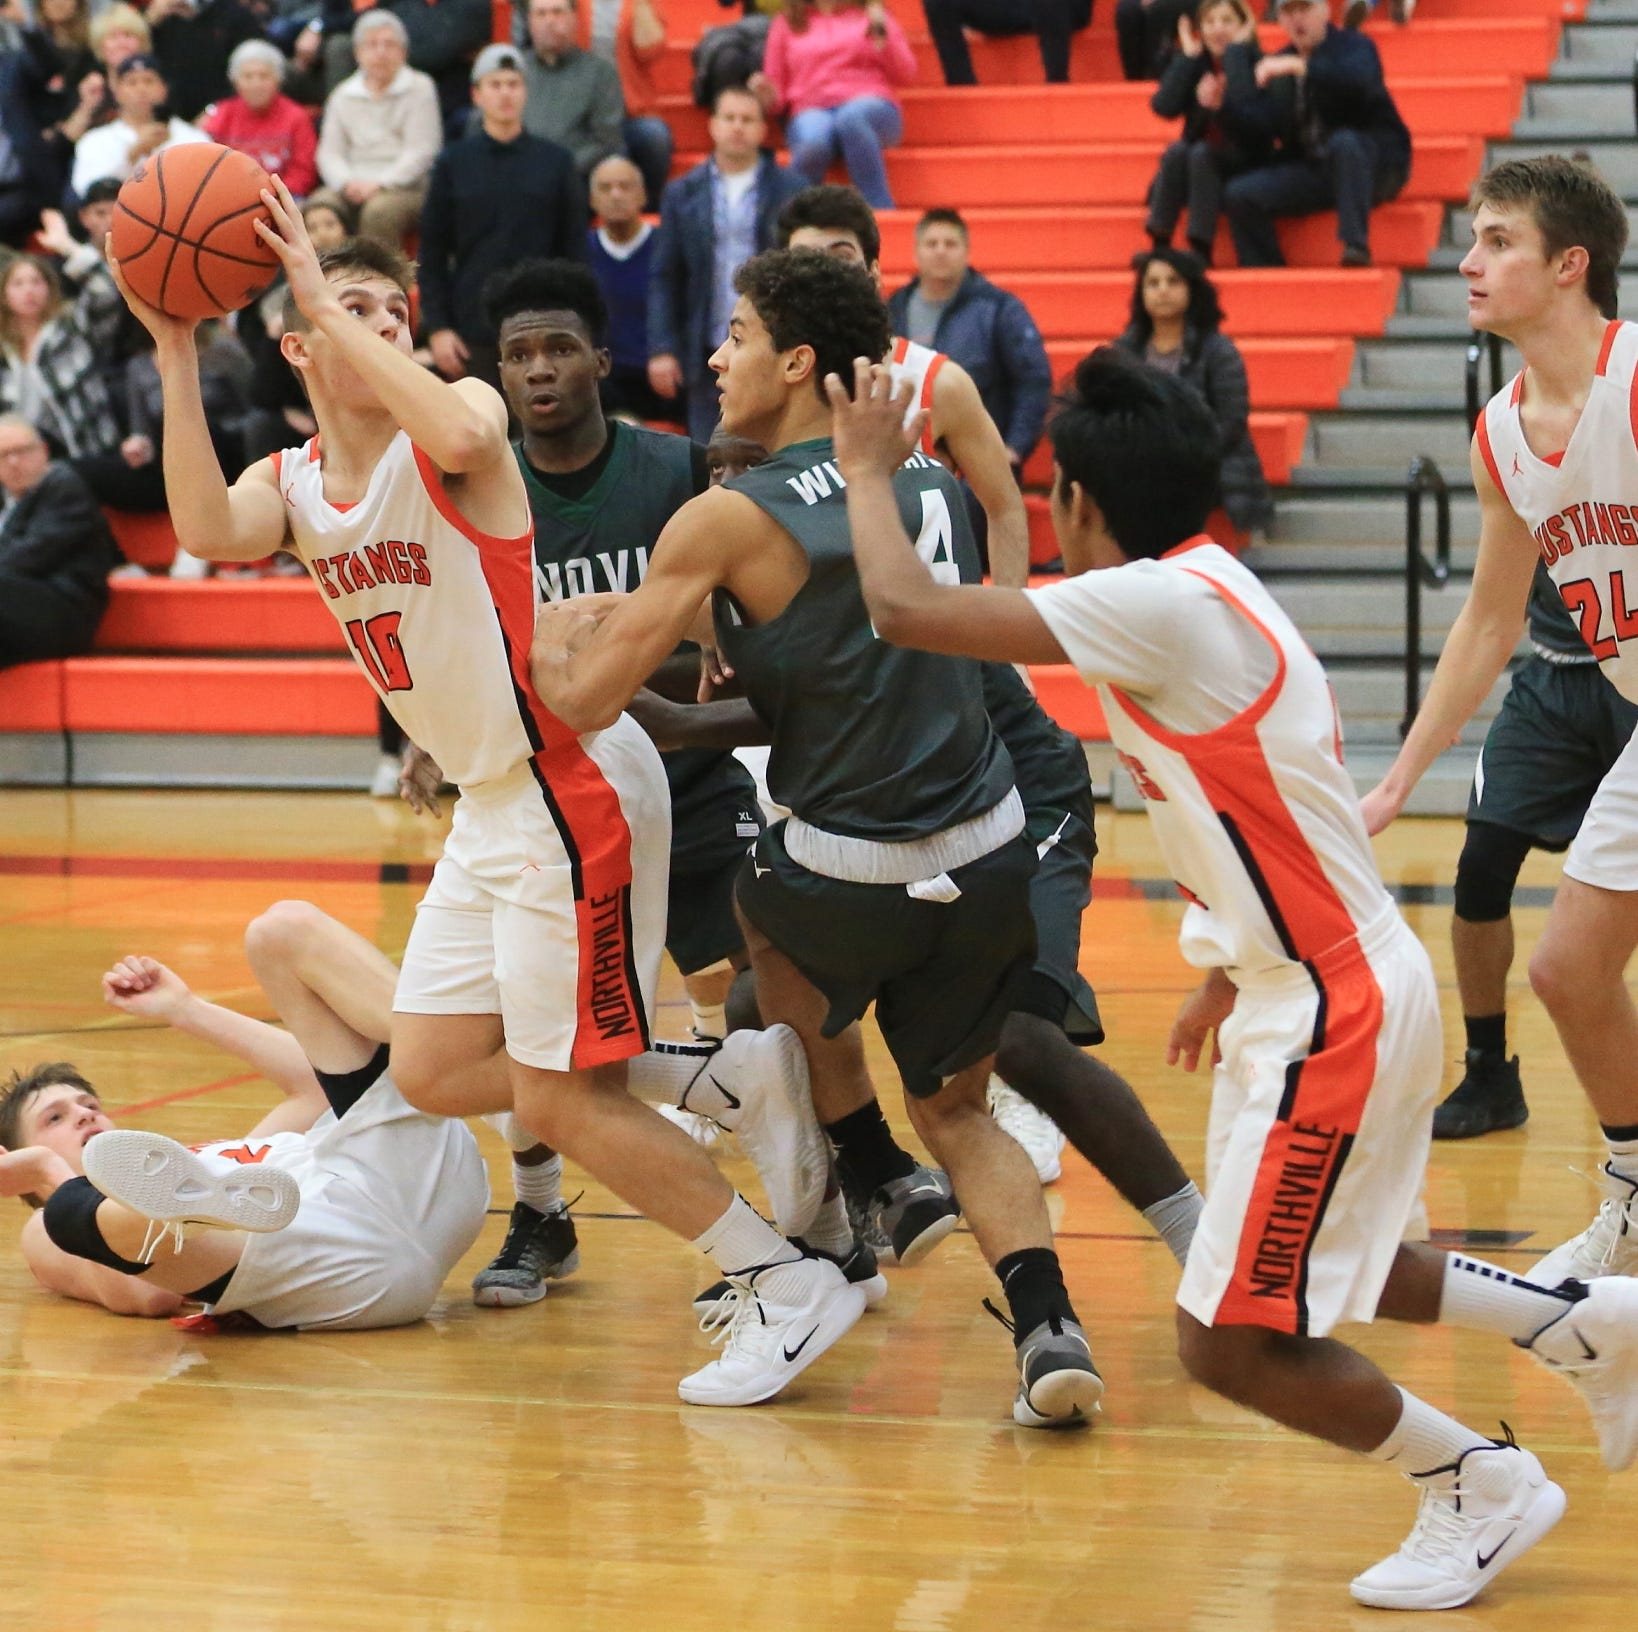 Down to the wire: Novi edges Northville on Verma's clutch trey